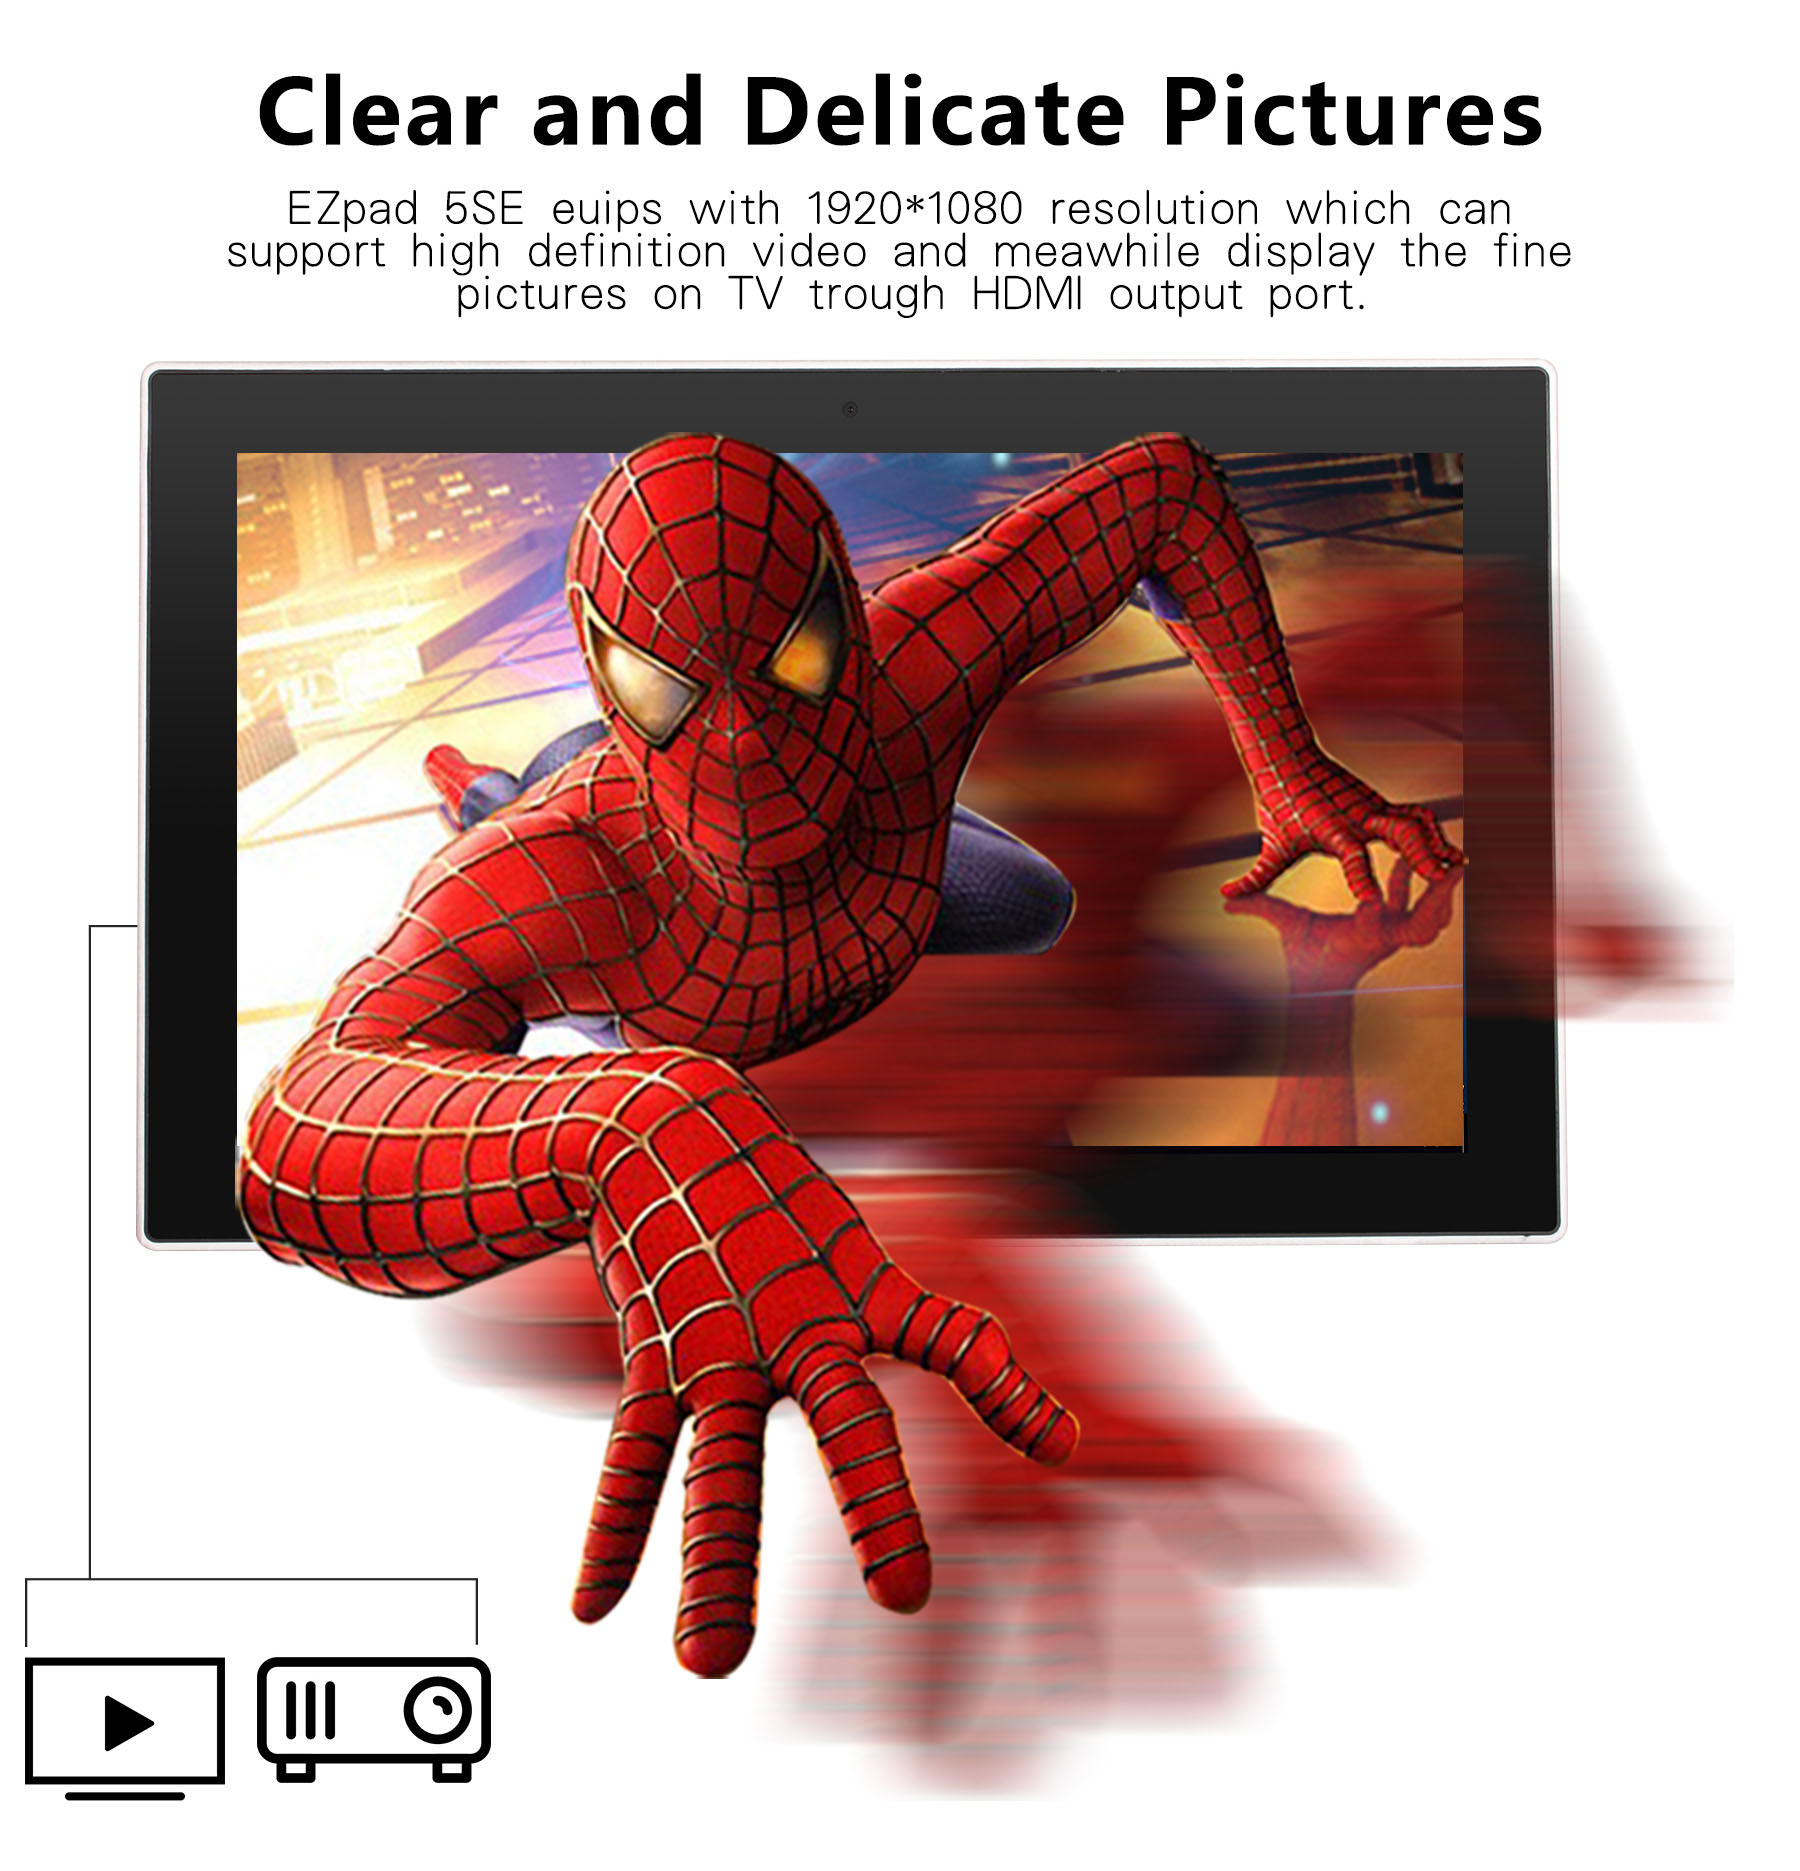 Jumper EZpad 5SE Tablet PC Windows 10 10.6 inch IPS Screen Intel Cherry Trail Z8300 Quad Core 1.44GHz 4GB RAM 64GB ROM Bluetooth 4.0 Dual Cameras